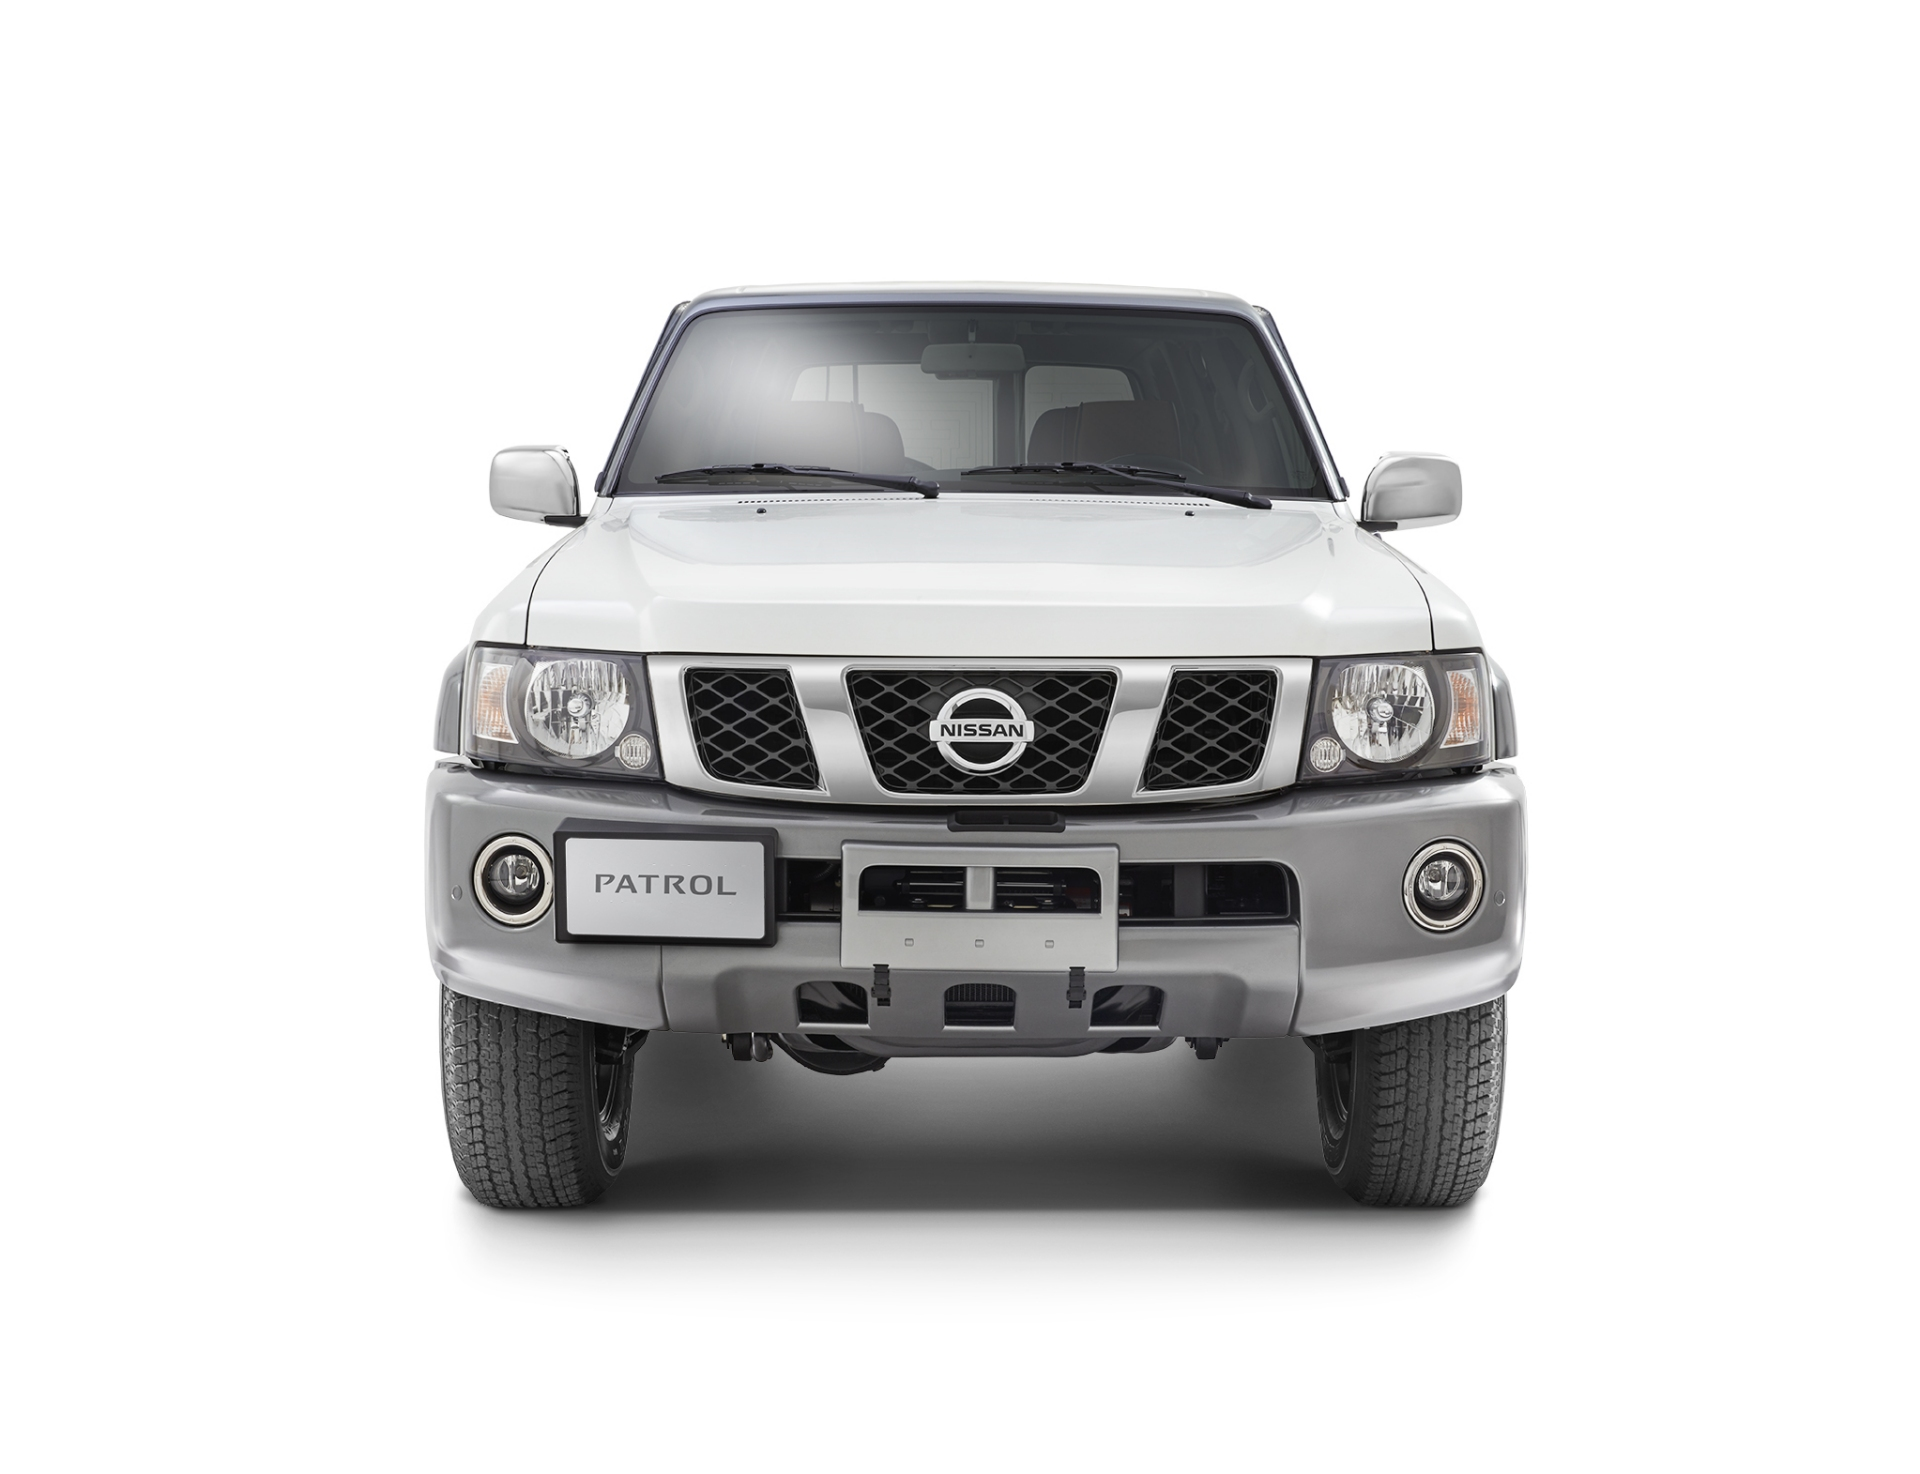 nissan patrol super safari 2018 4 8l 3 door w o winch in uae new car prices specs reviews. Black Bedroom Furniture Sets. Home Design Ideas